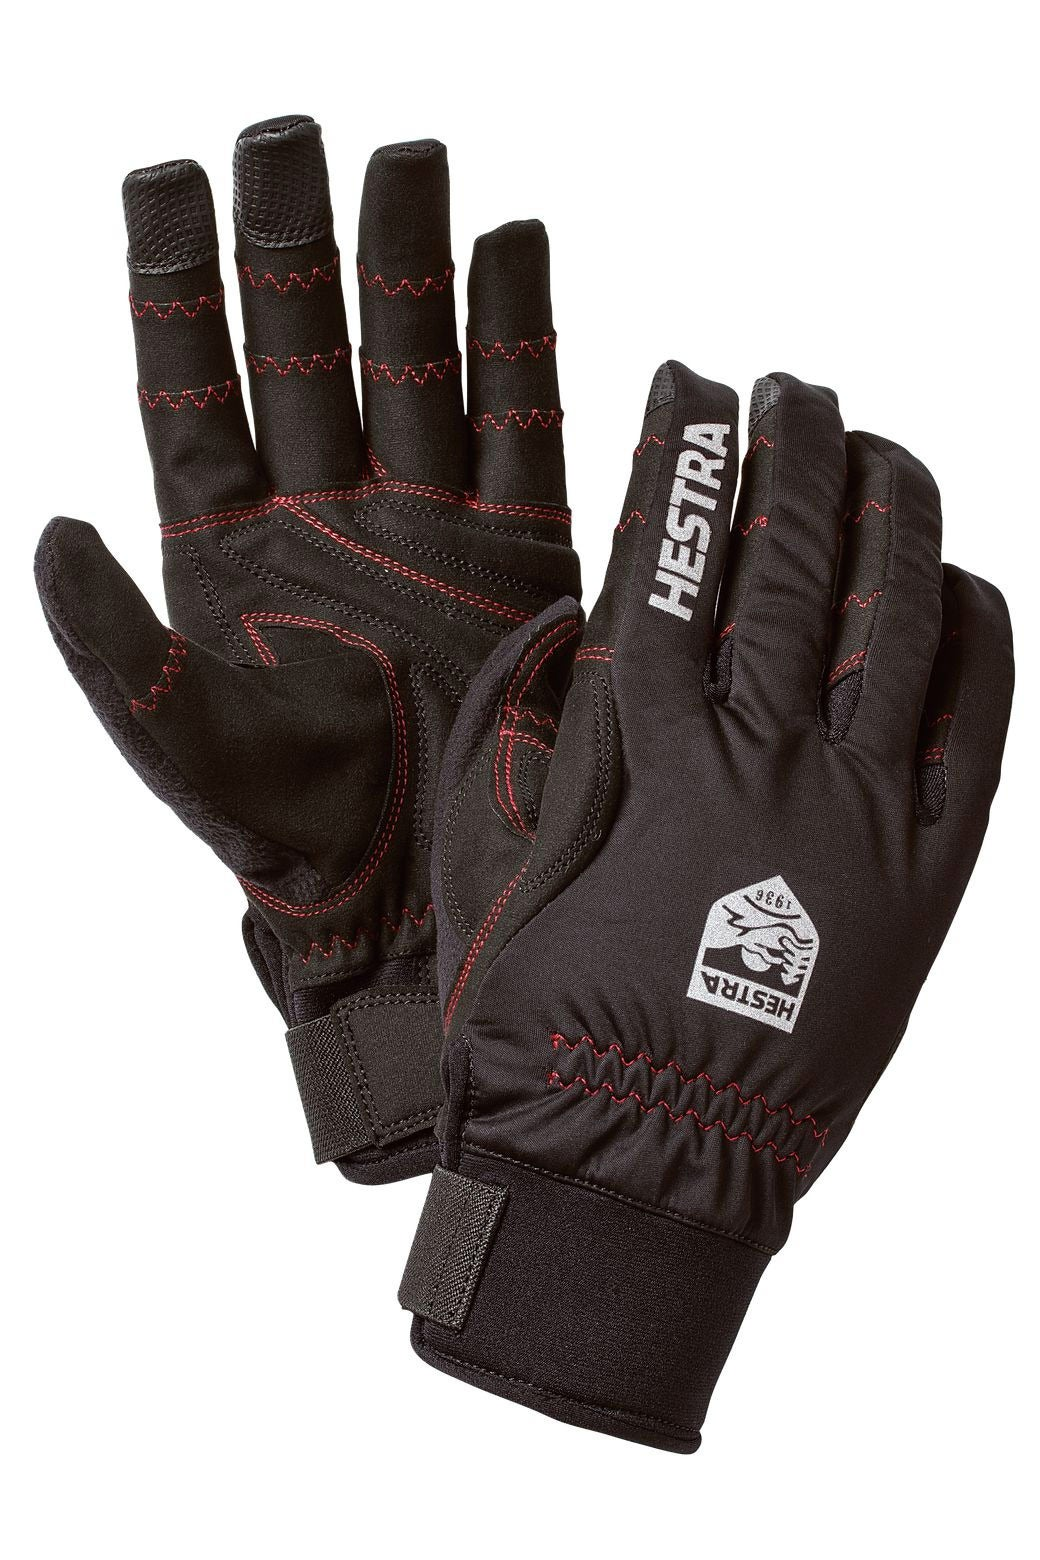 Hestra Bike Gloves.